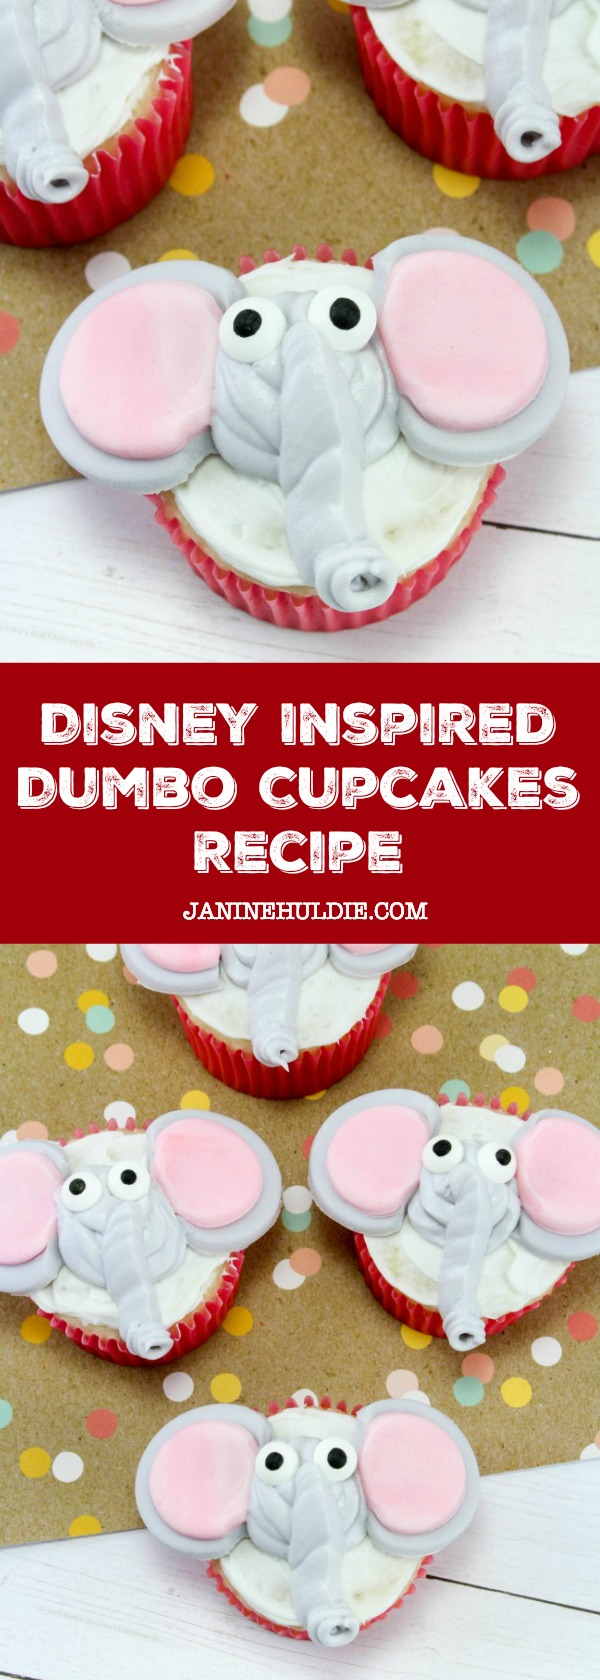 Disney Inspired Dumbo Cupcakes Recipe